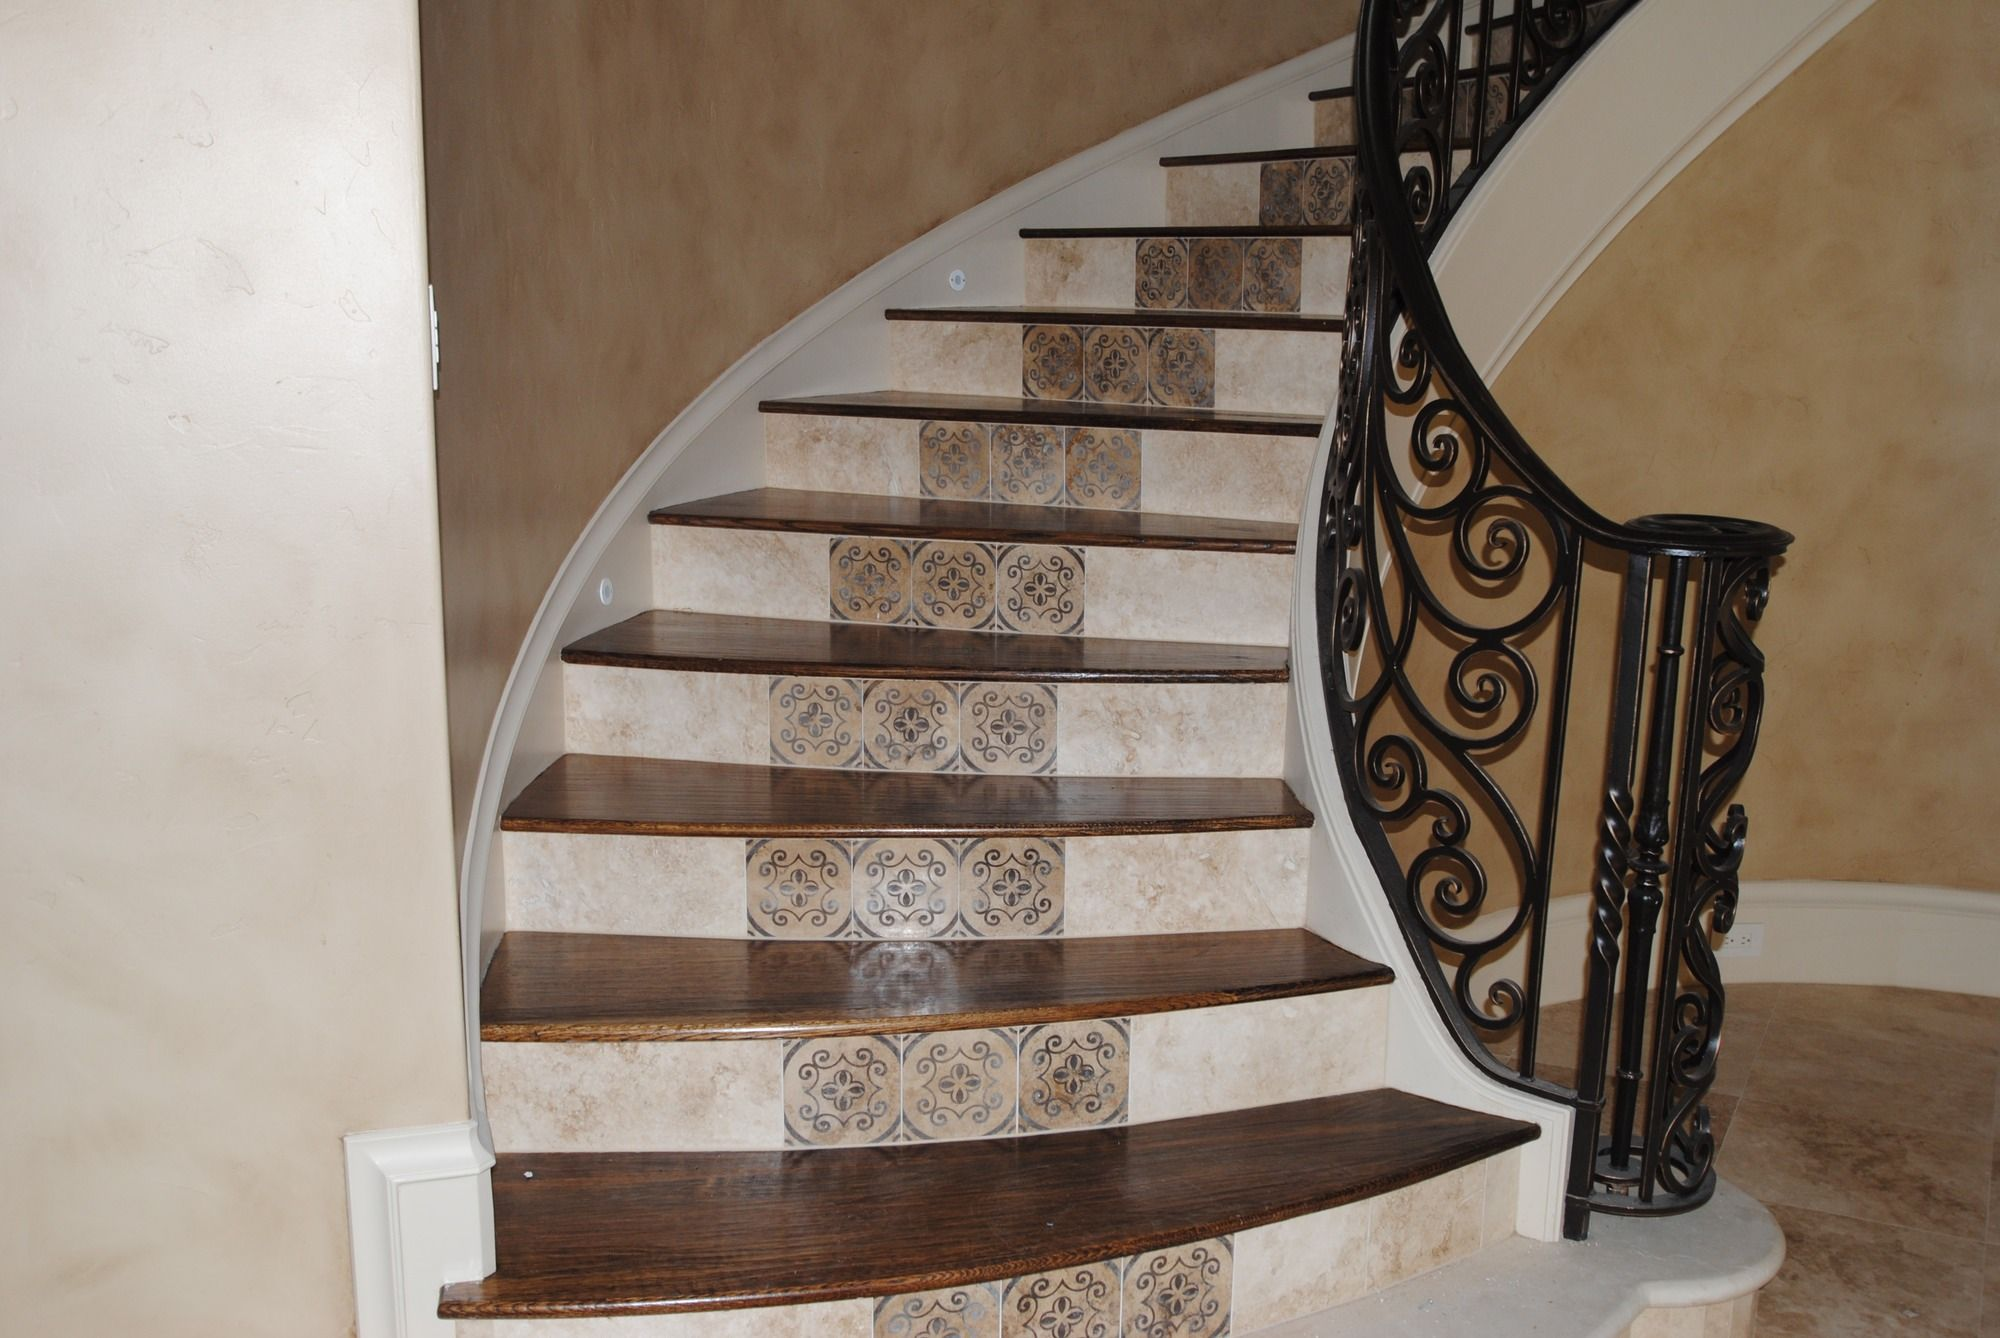 Stair Cases Home Interior Design Ideas Home Interior | Tiles Design For Stairs Wall